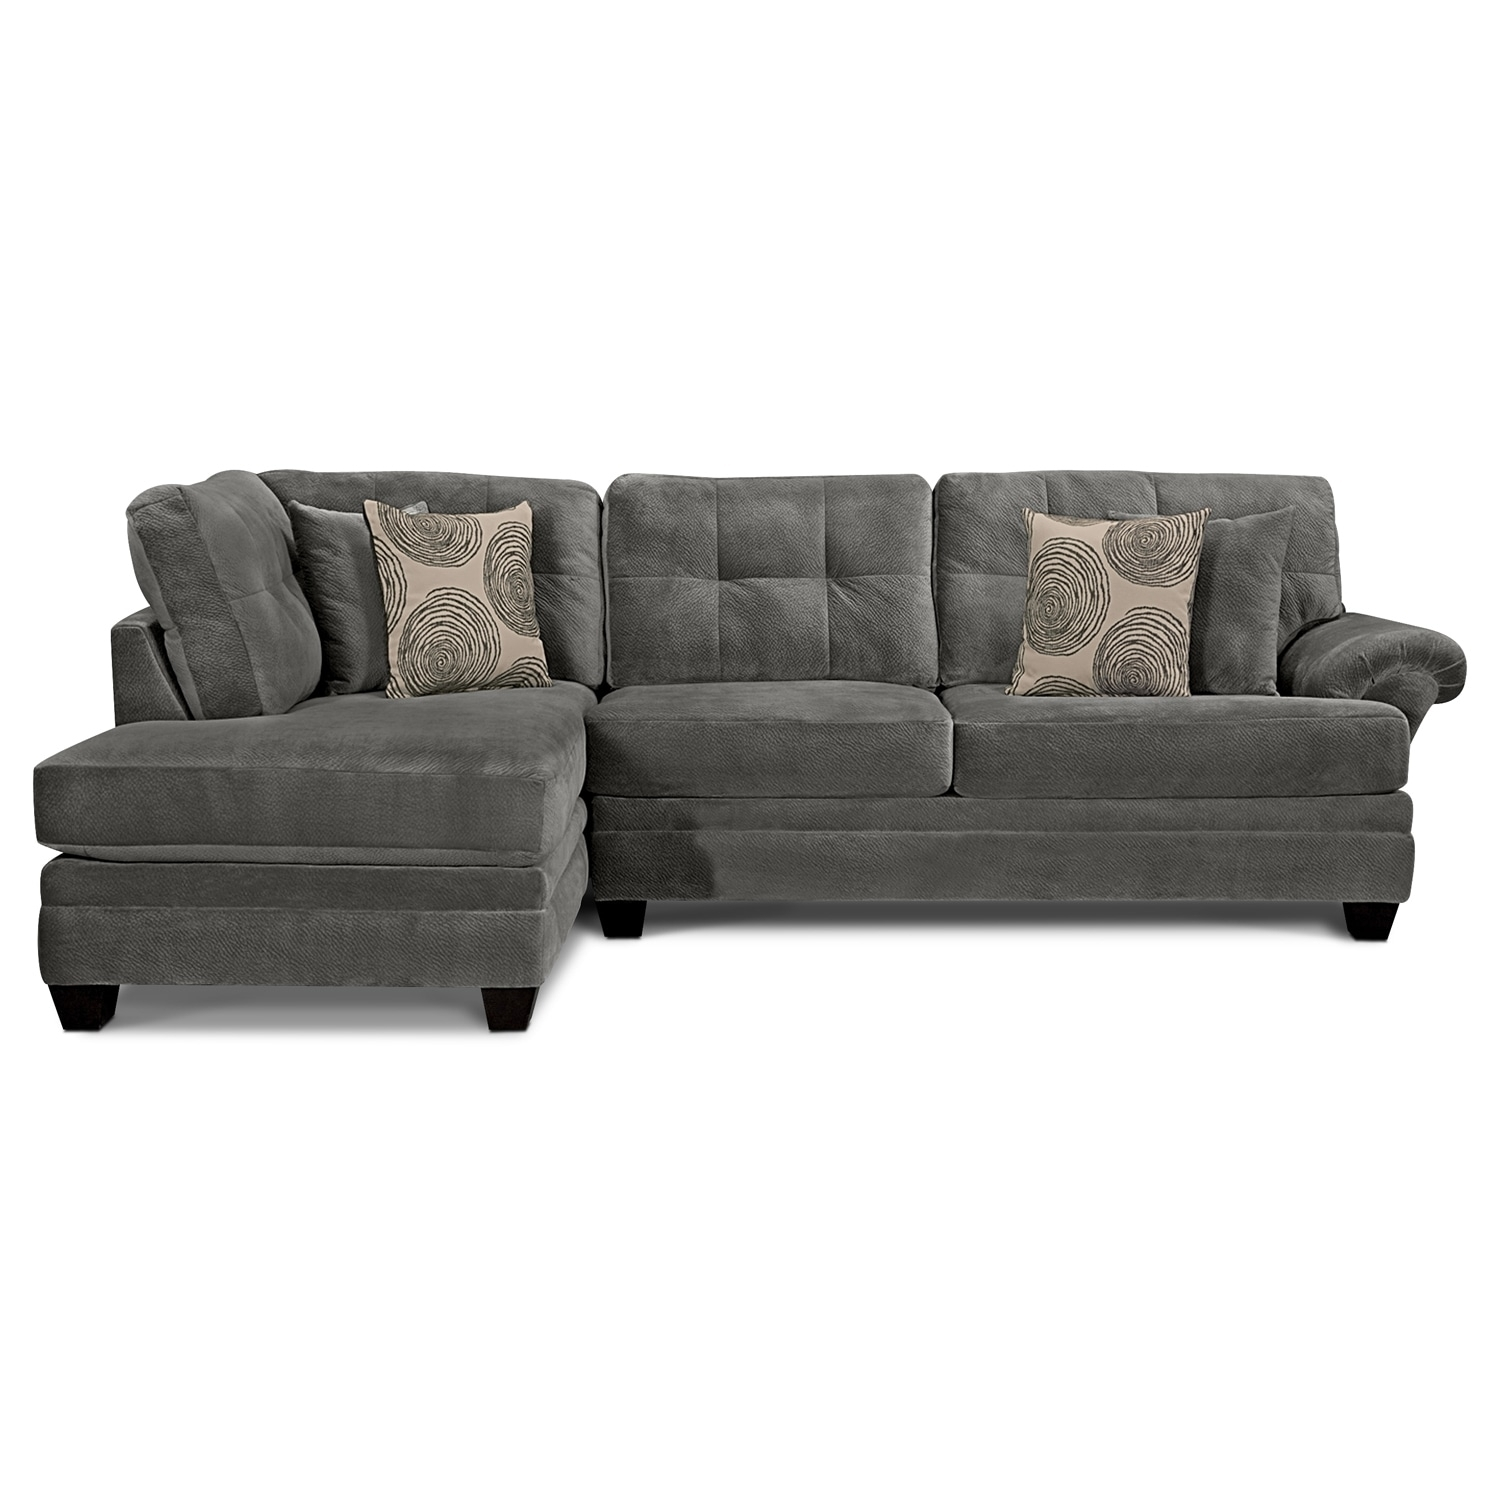 Cordelle 2-Piece Sectional With Left-Facing Chaise - Gray | Value pertaining to Cosmos Grey 2 Piece Sectionals With Laf Chaise (Image 7 of 30)